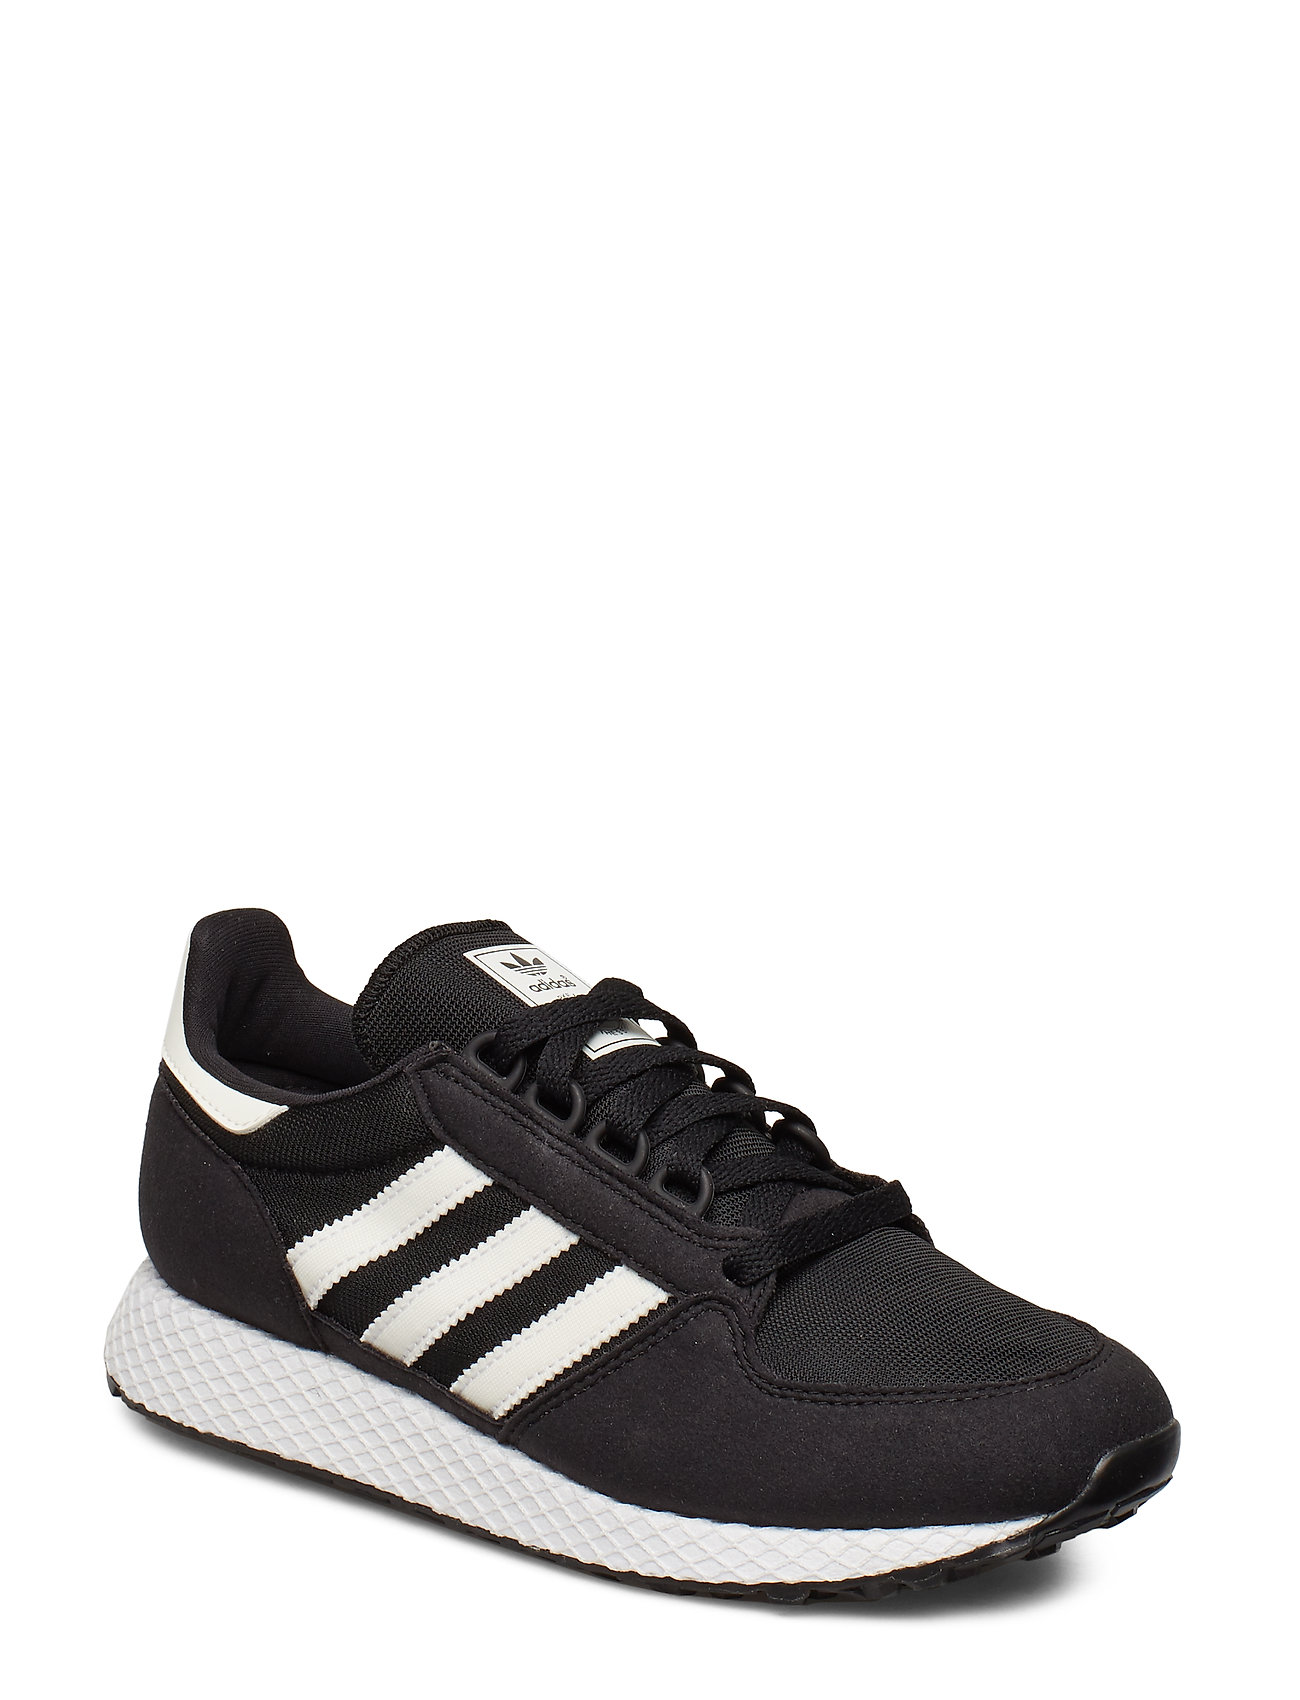 adidas Originals FOREST GROVE J - CBLACK/CLOWHI/CWHITE